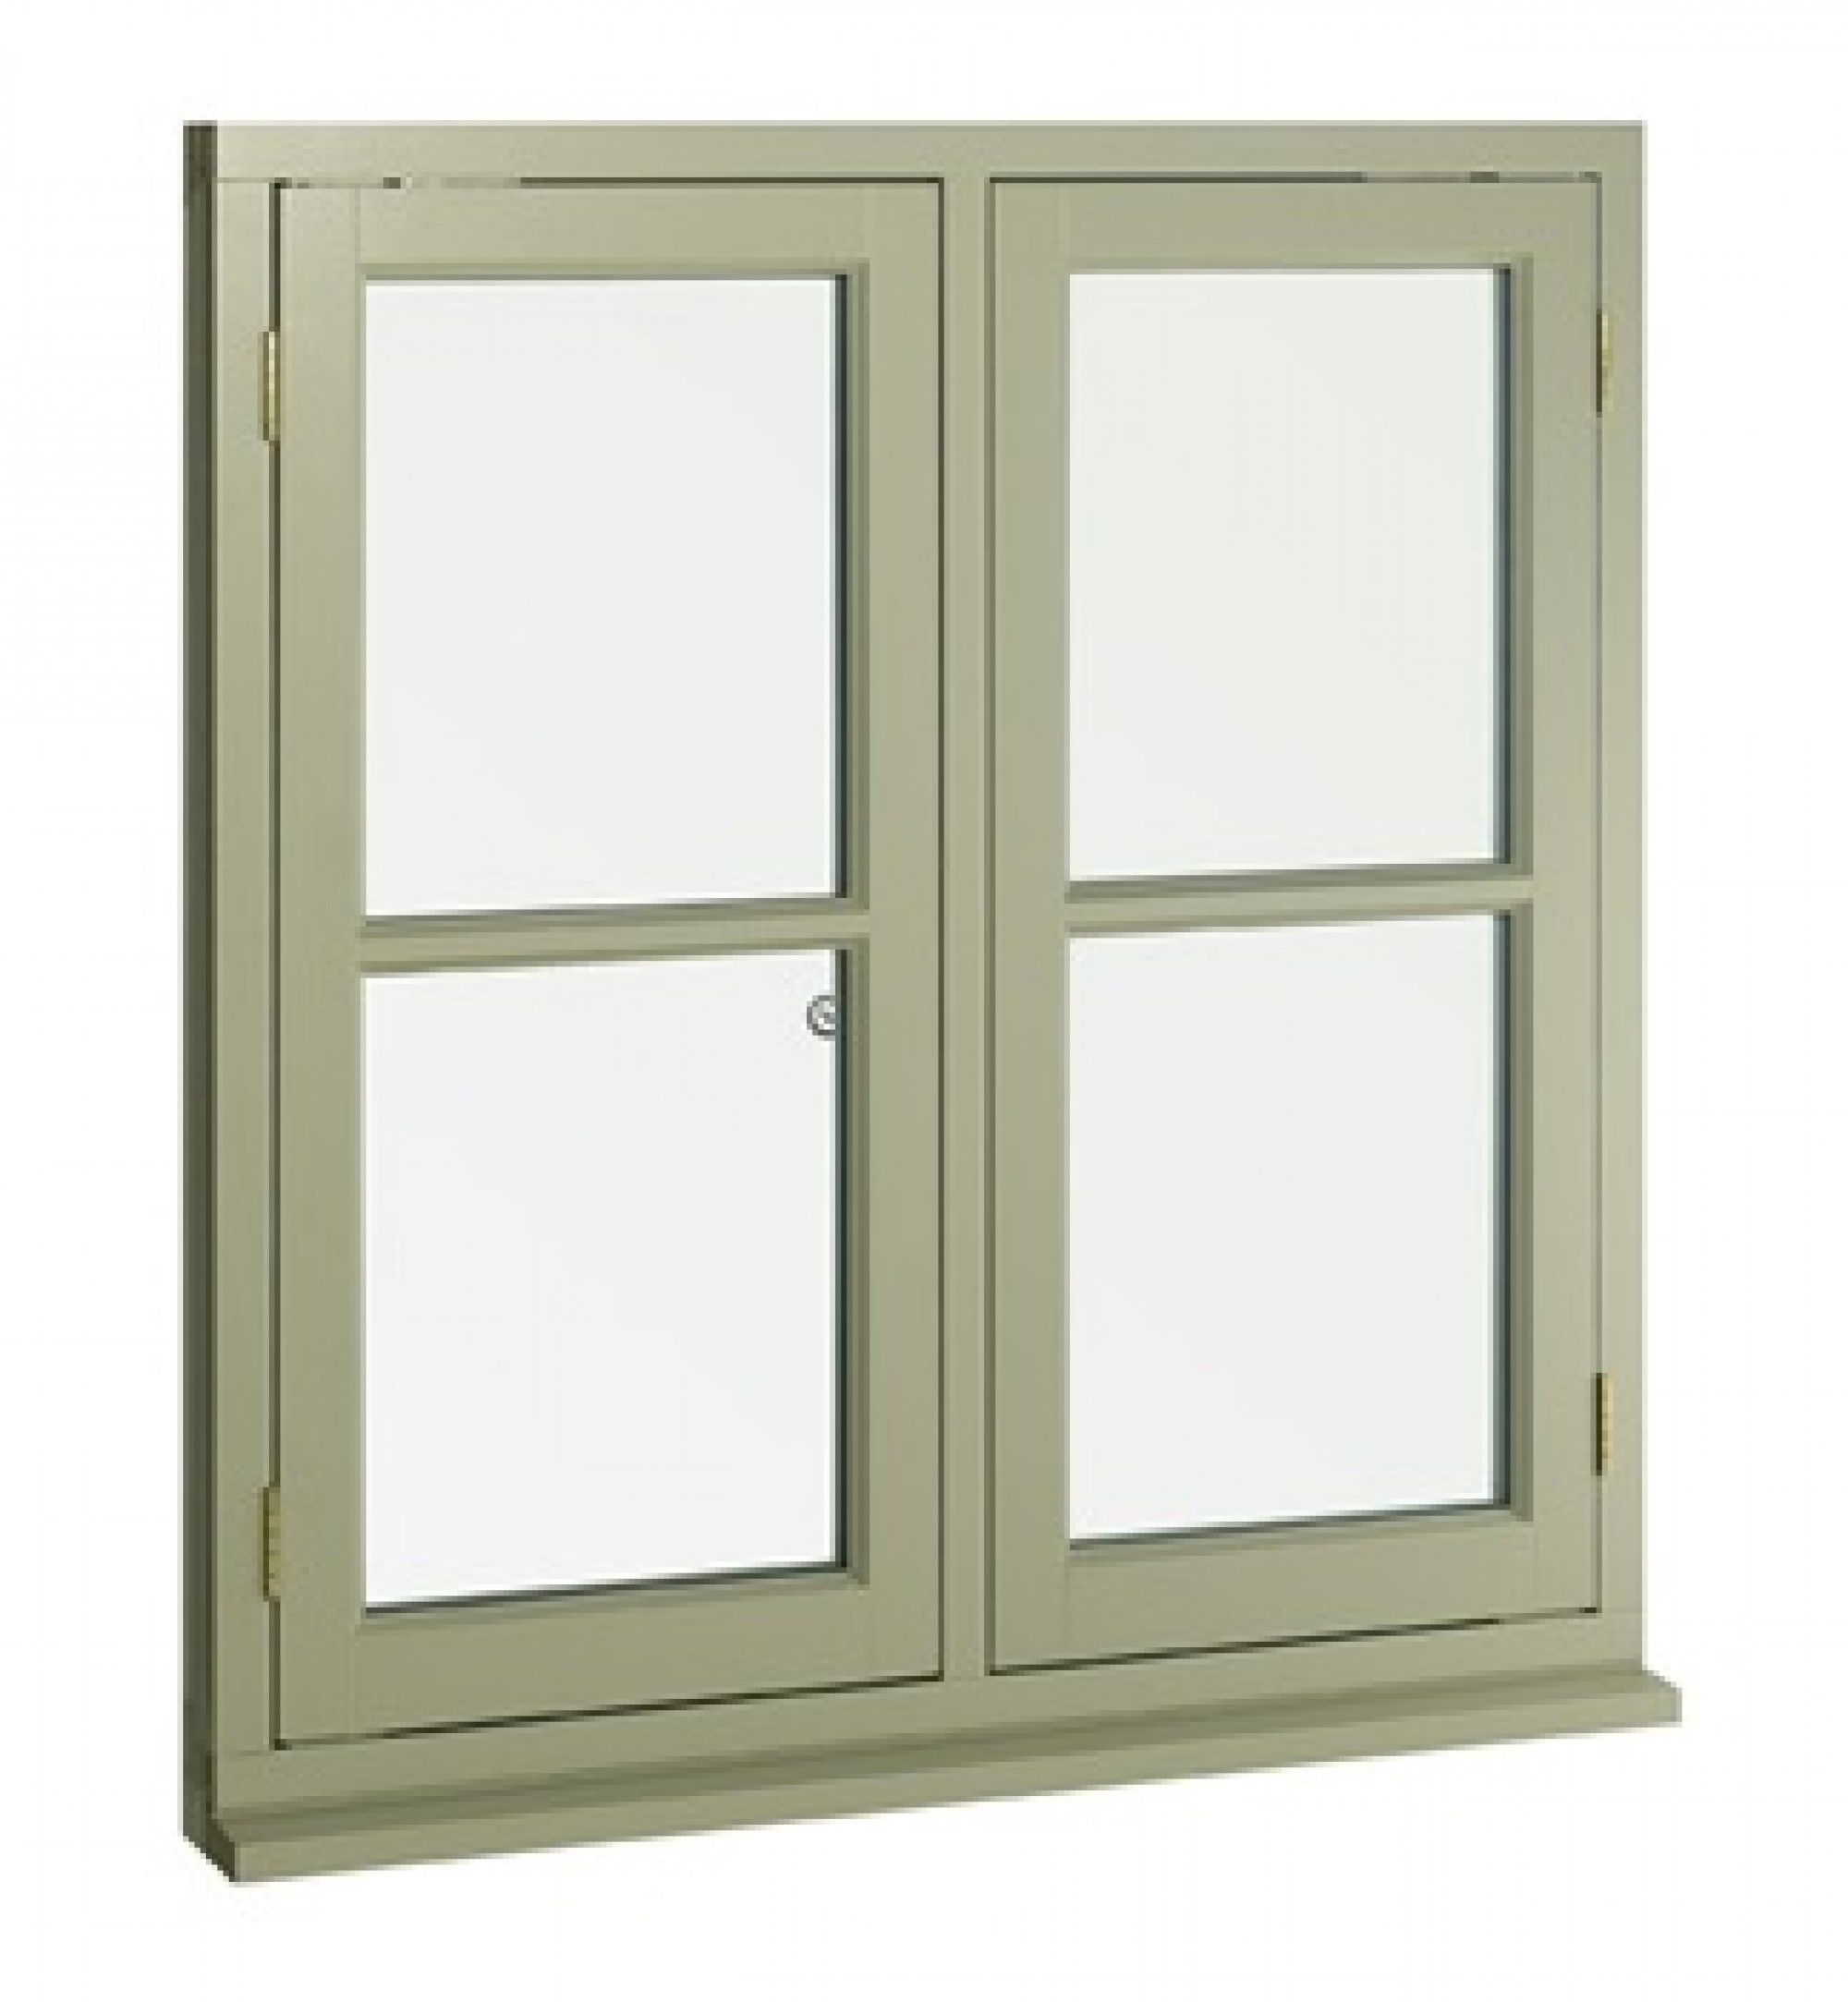 Conventional - traditional flush casement windows ...